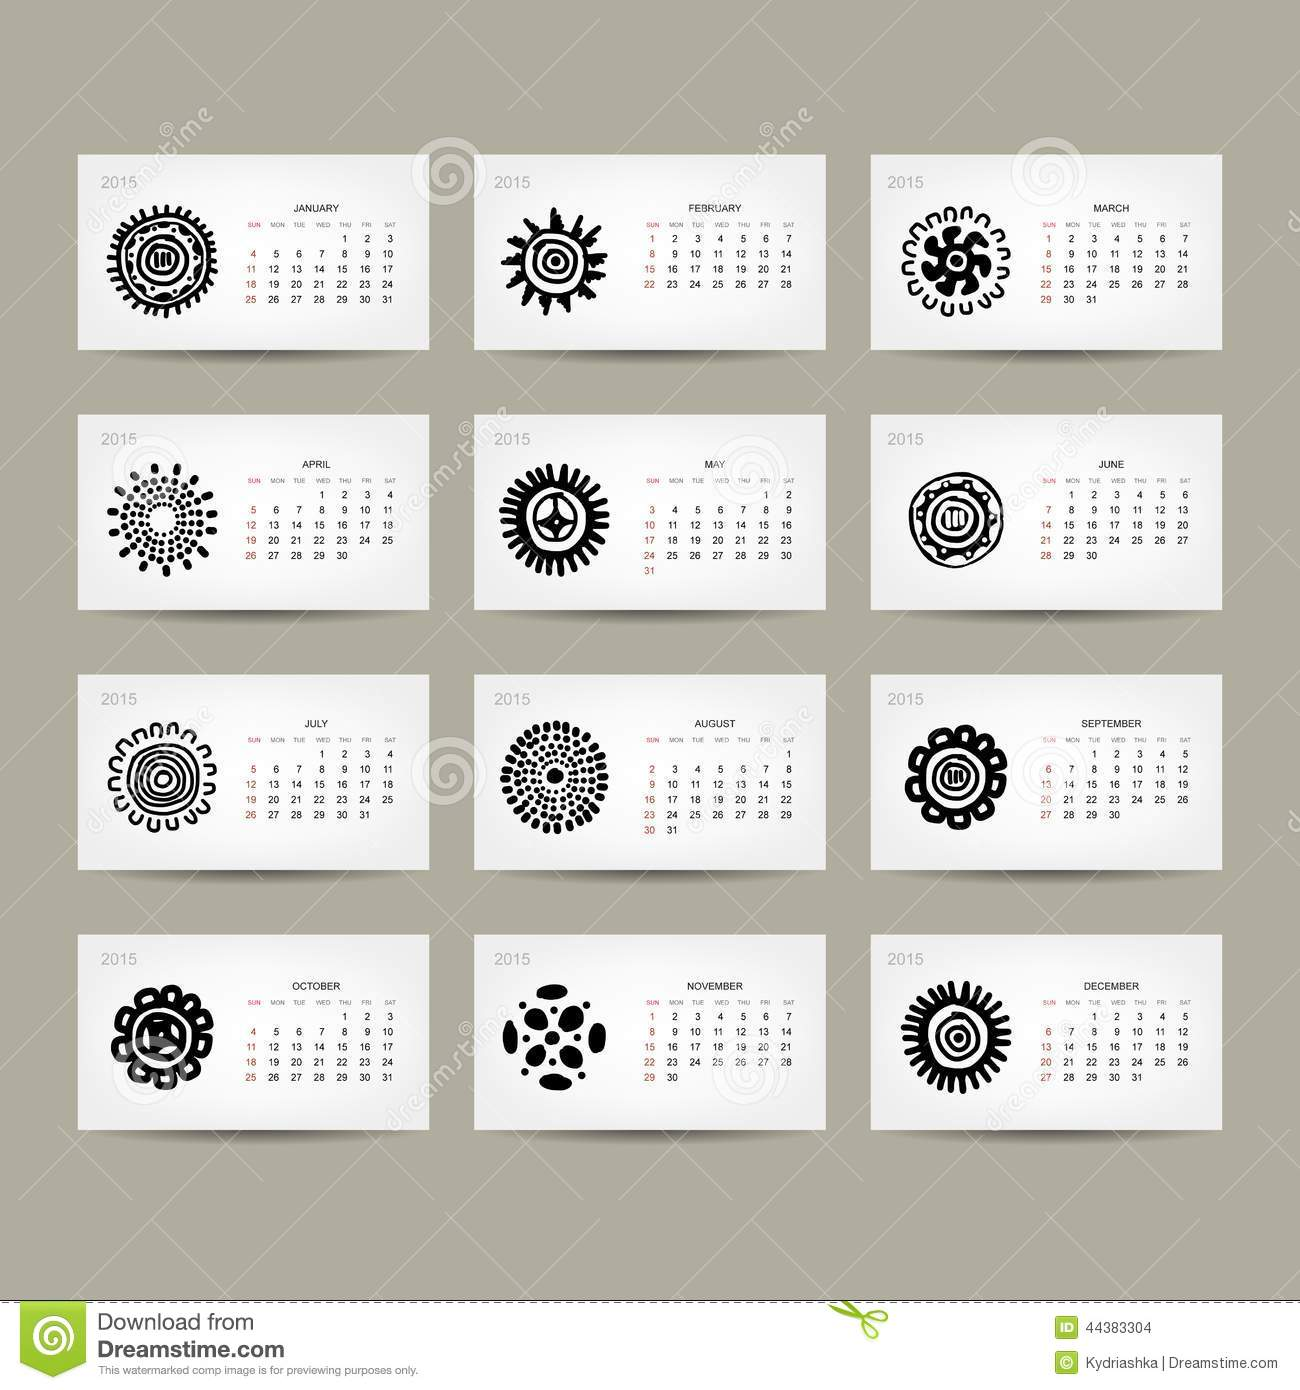 Illustration Calendar Design : Calendar grid for your design ethnic stock vector